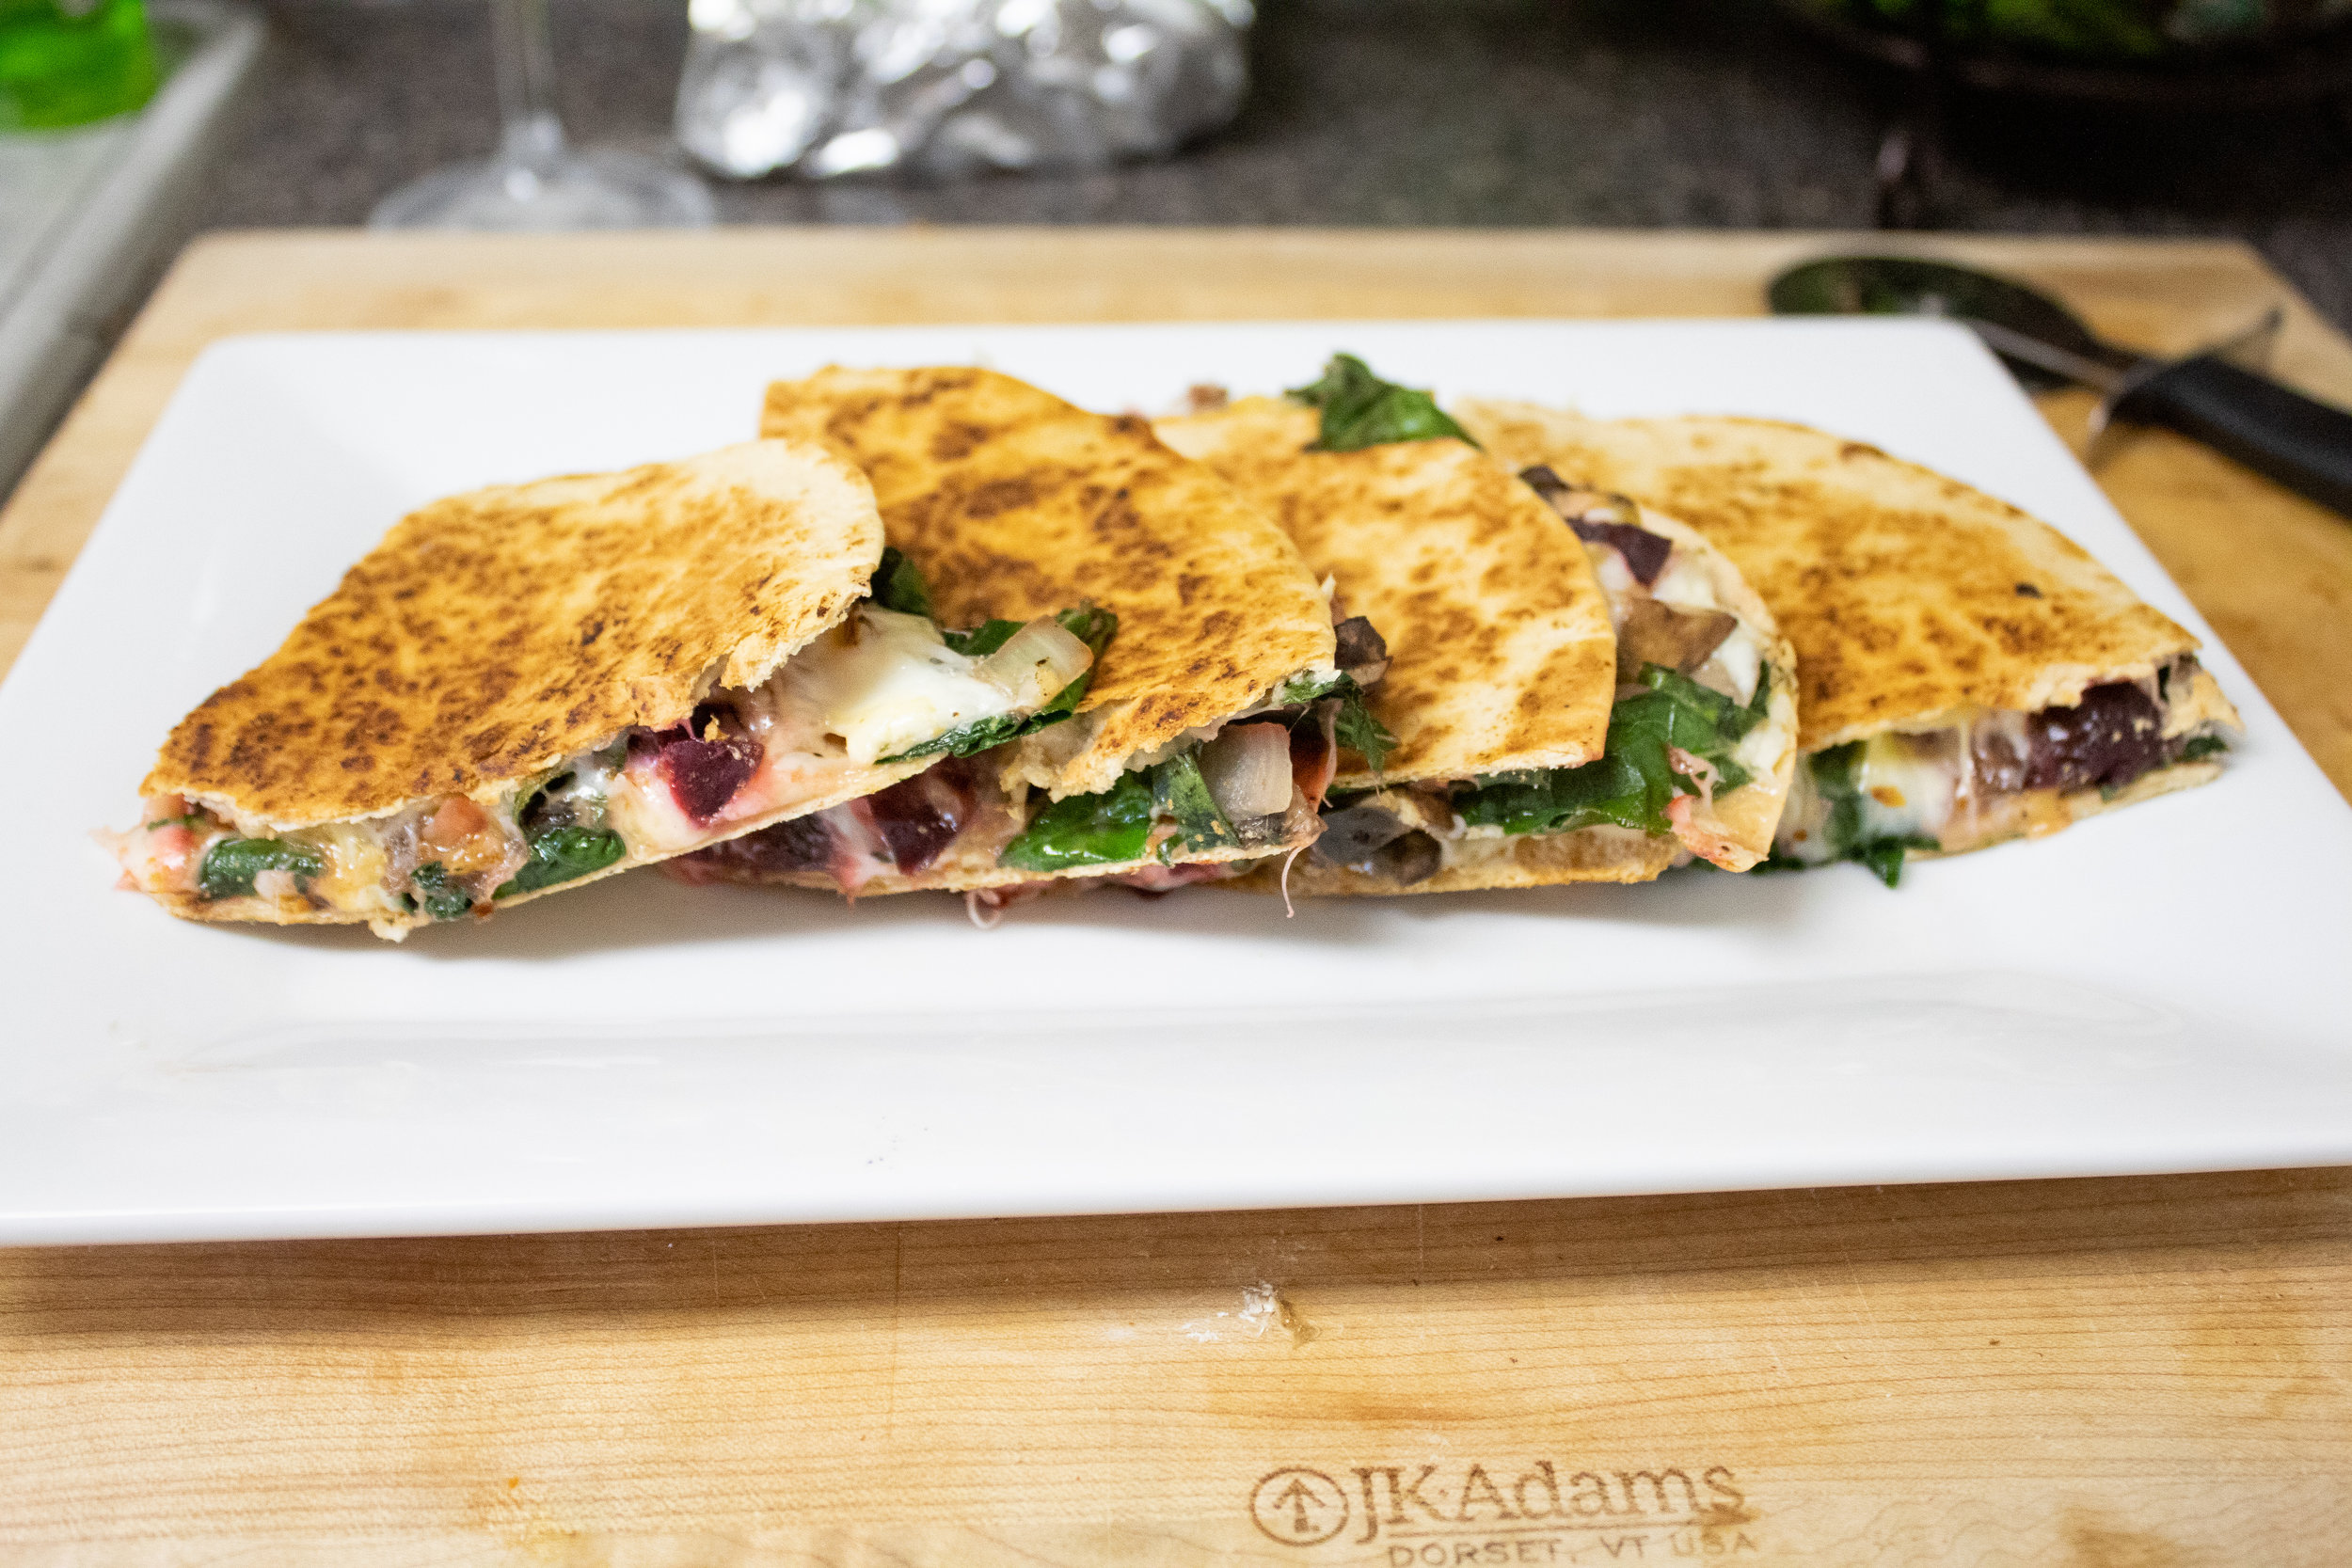 Healthy and low calorie veggie and cheese quesadilla with beets